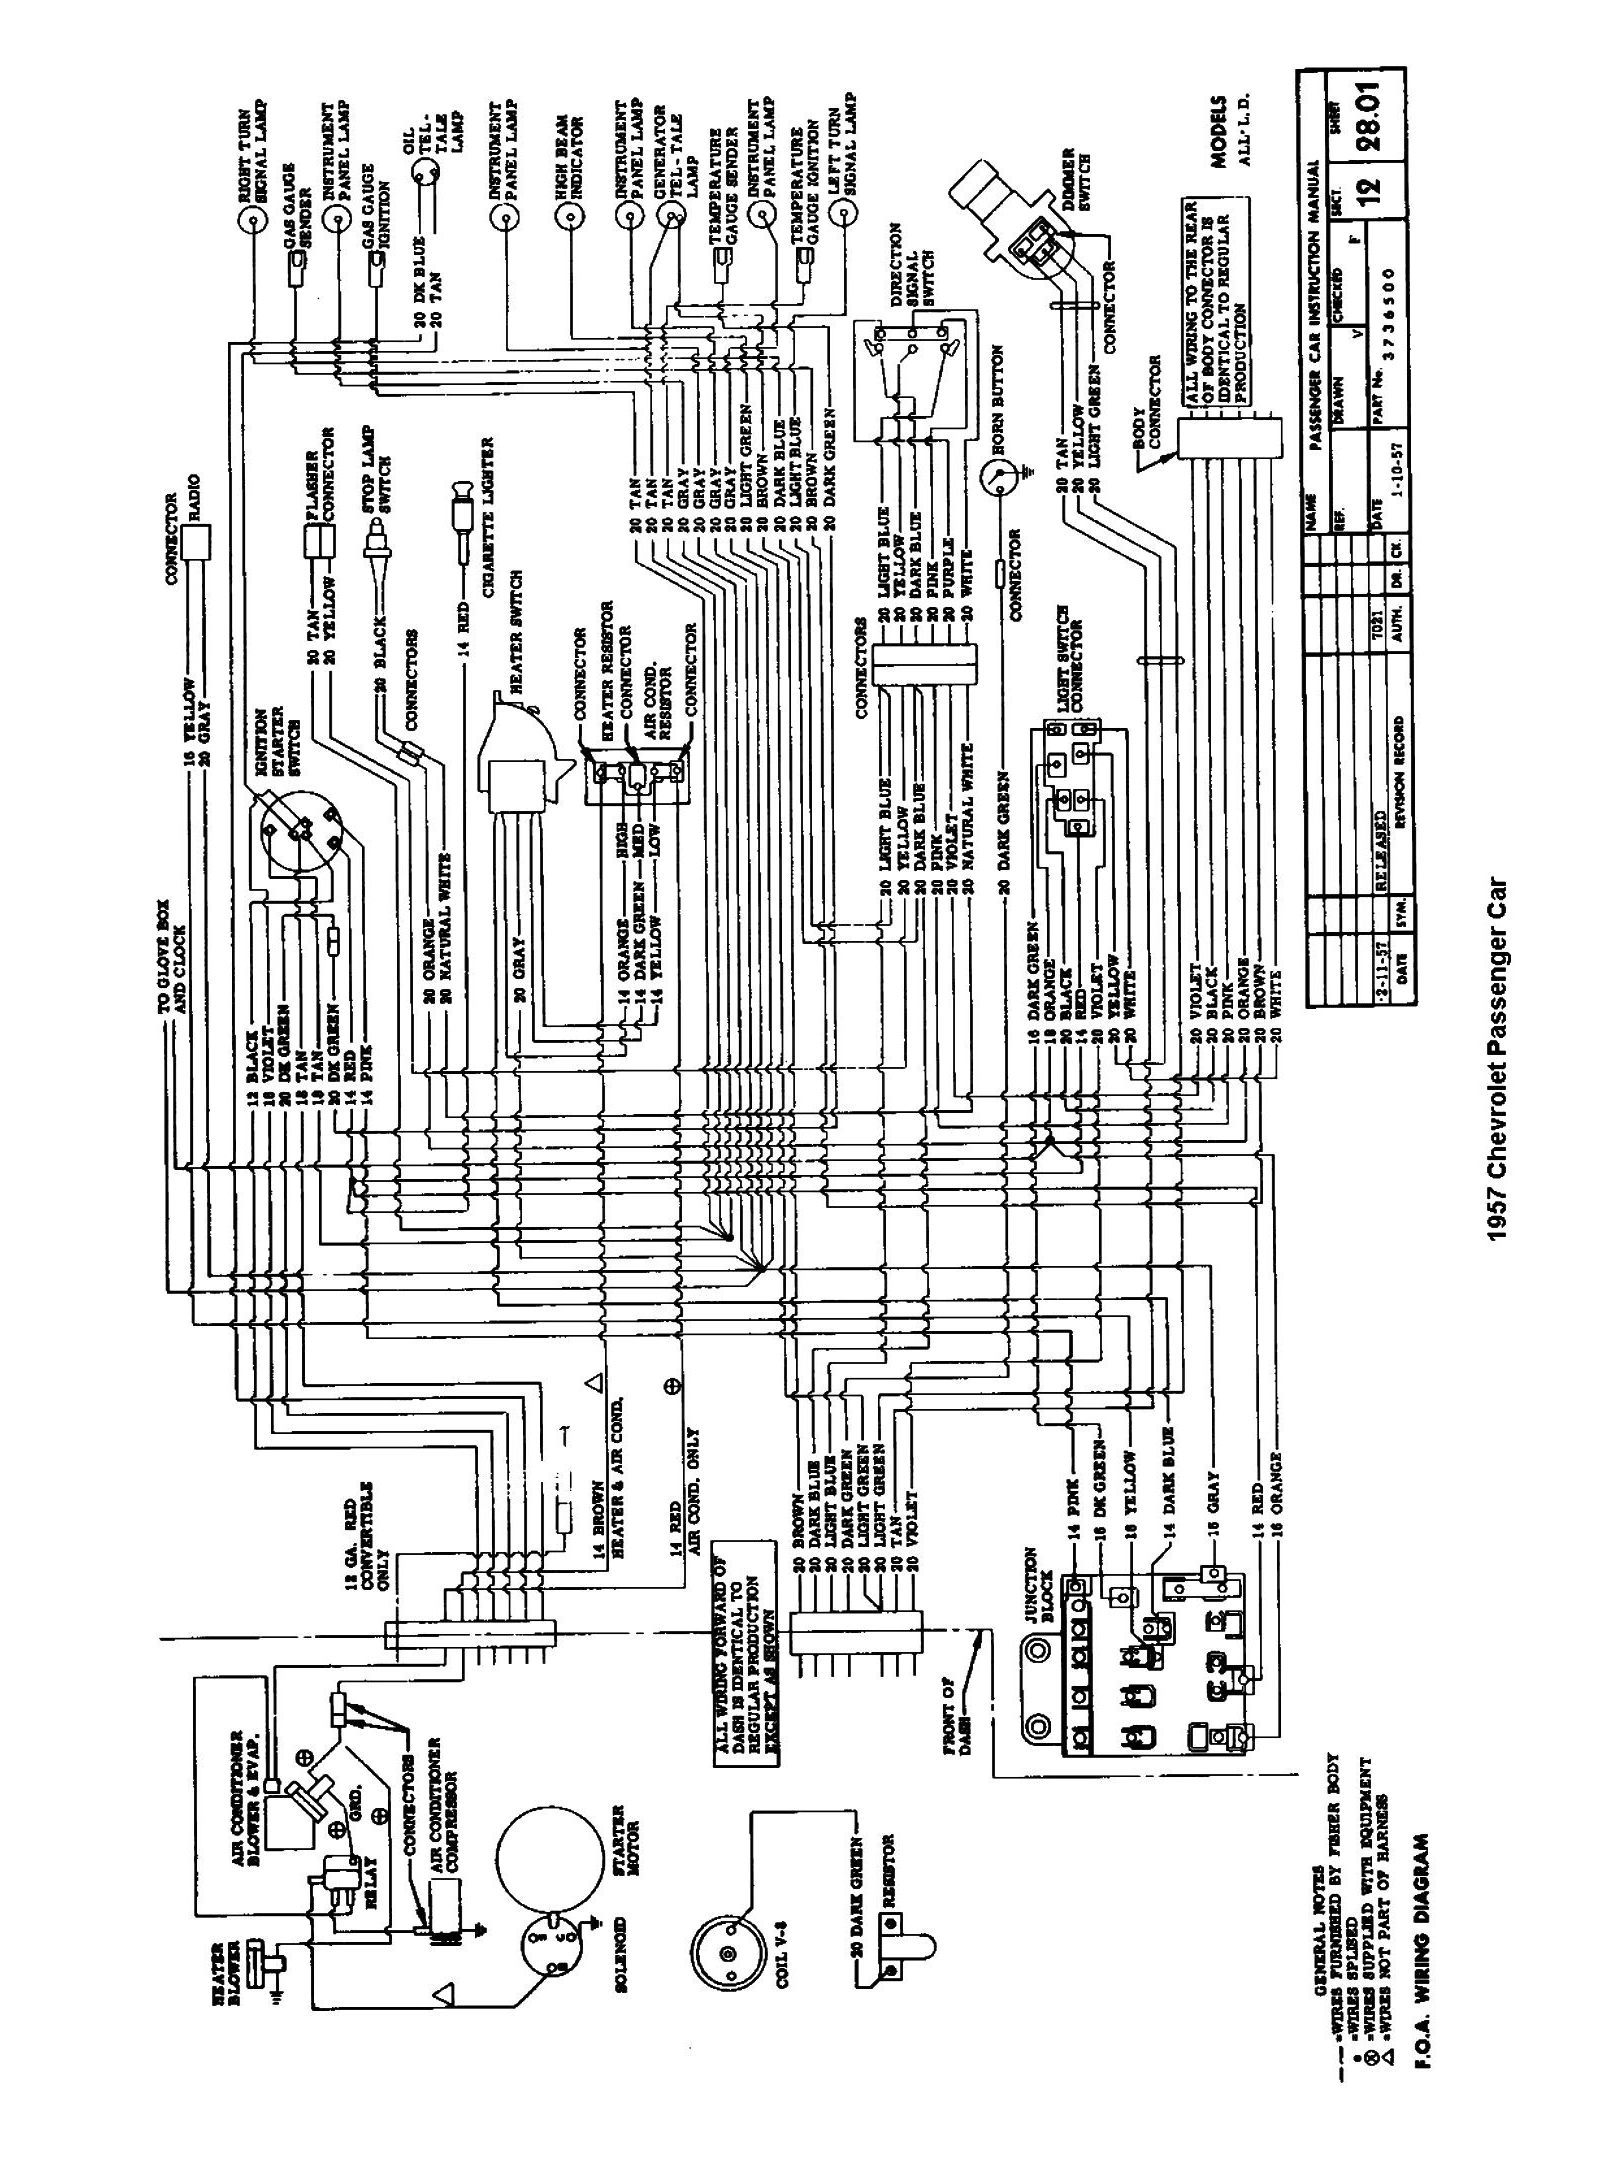 57car2 chevy wiring diagrams chevy wiring at bayanpartner.co